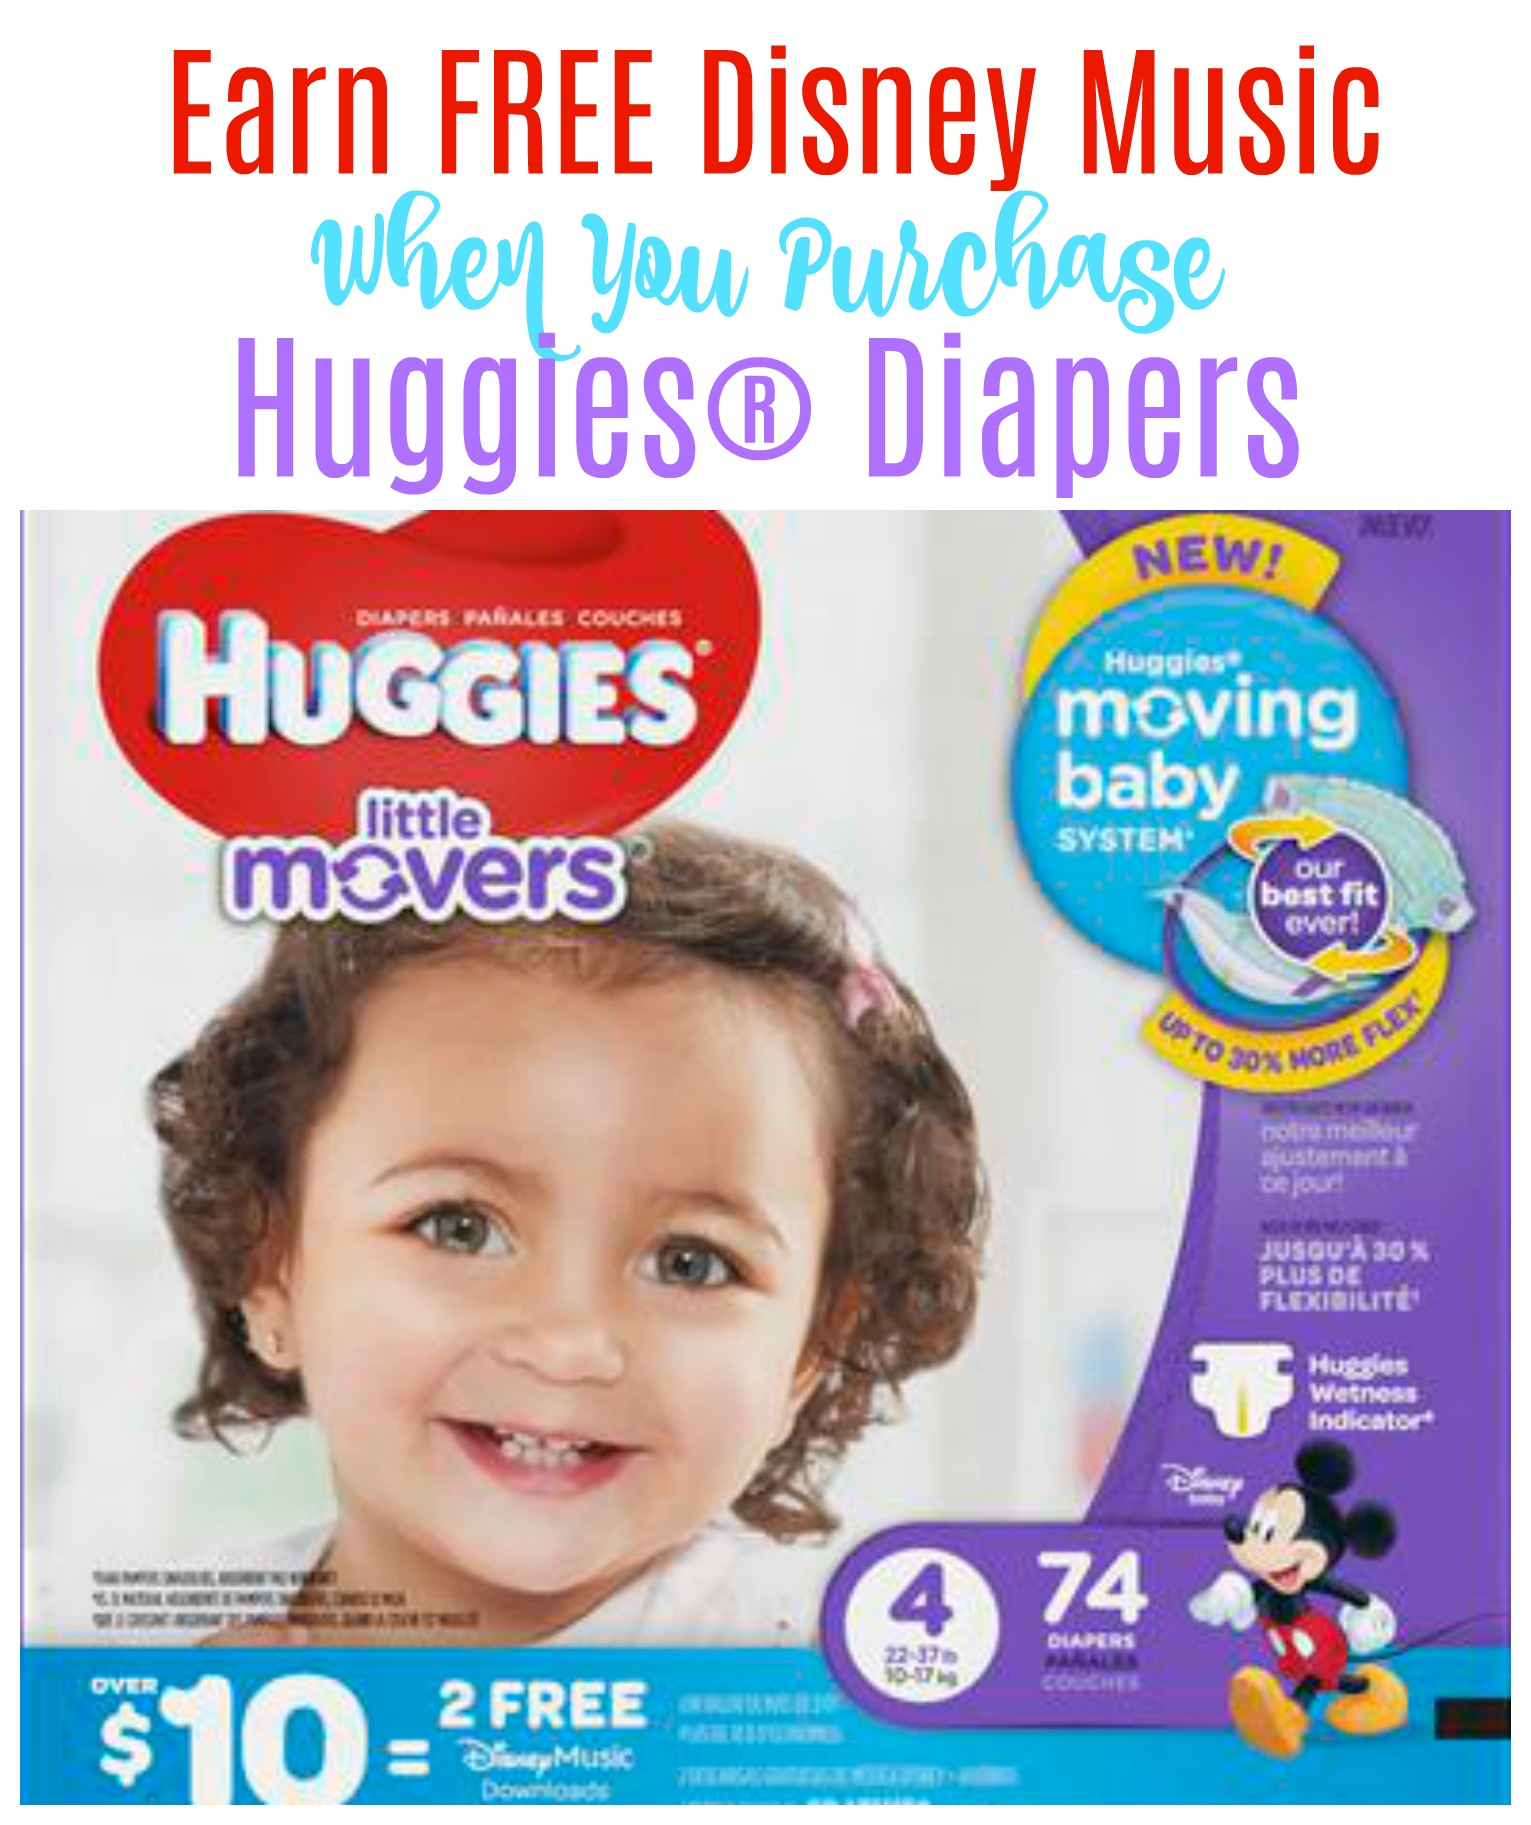 Huggies Disney Music Promo